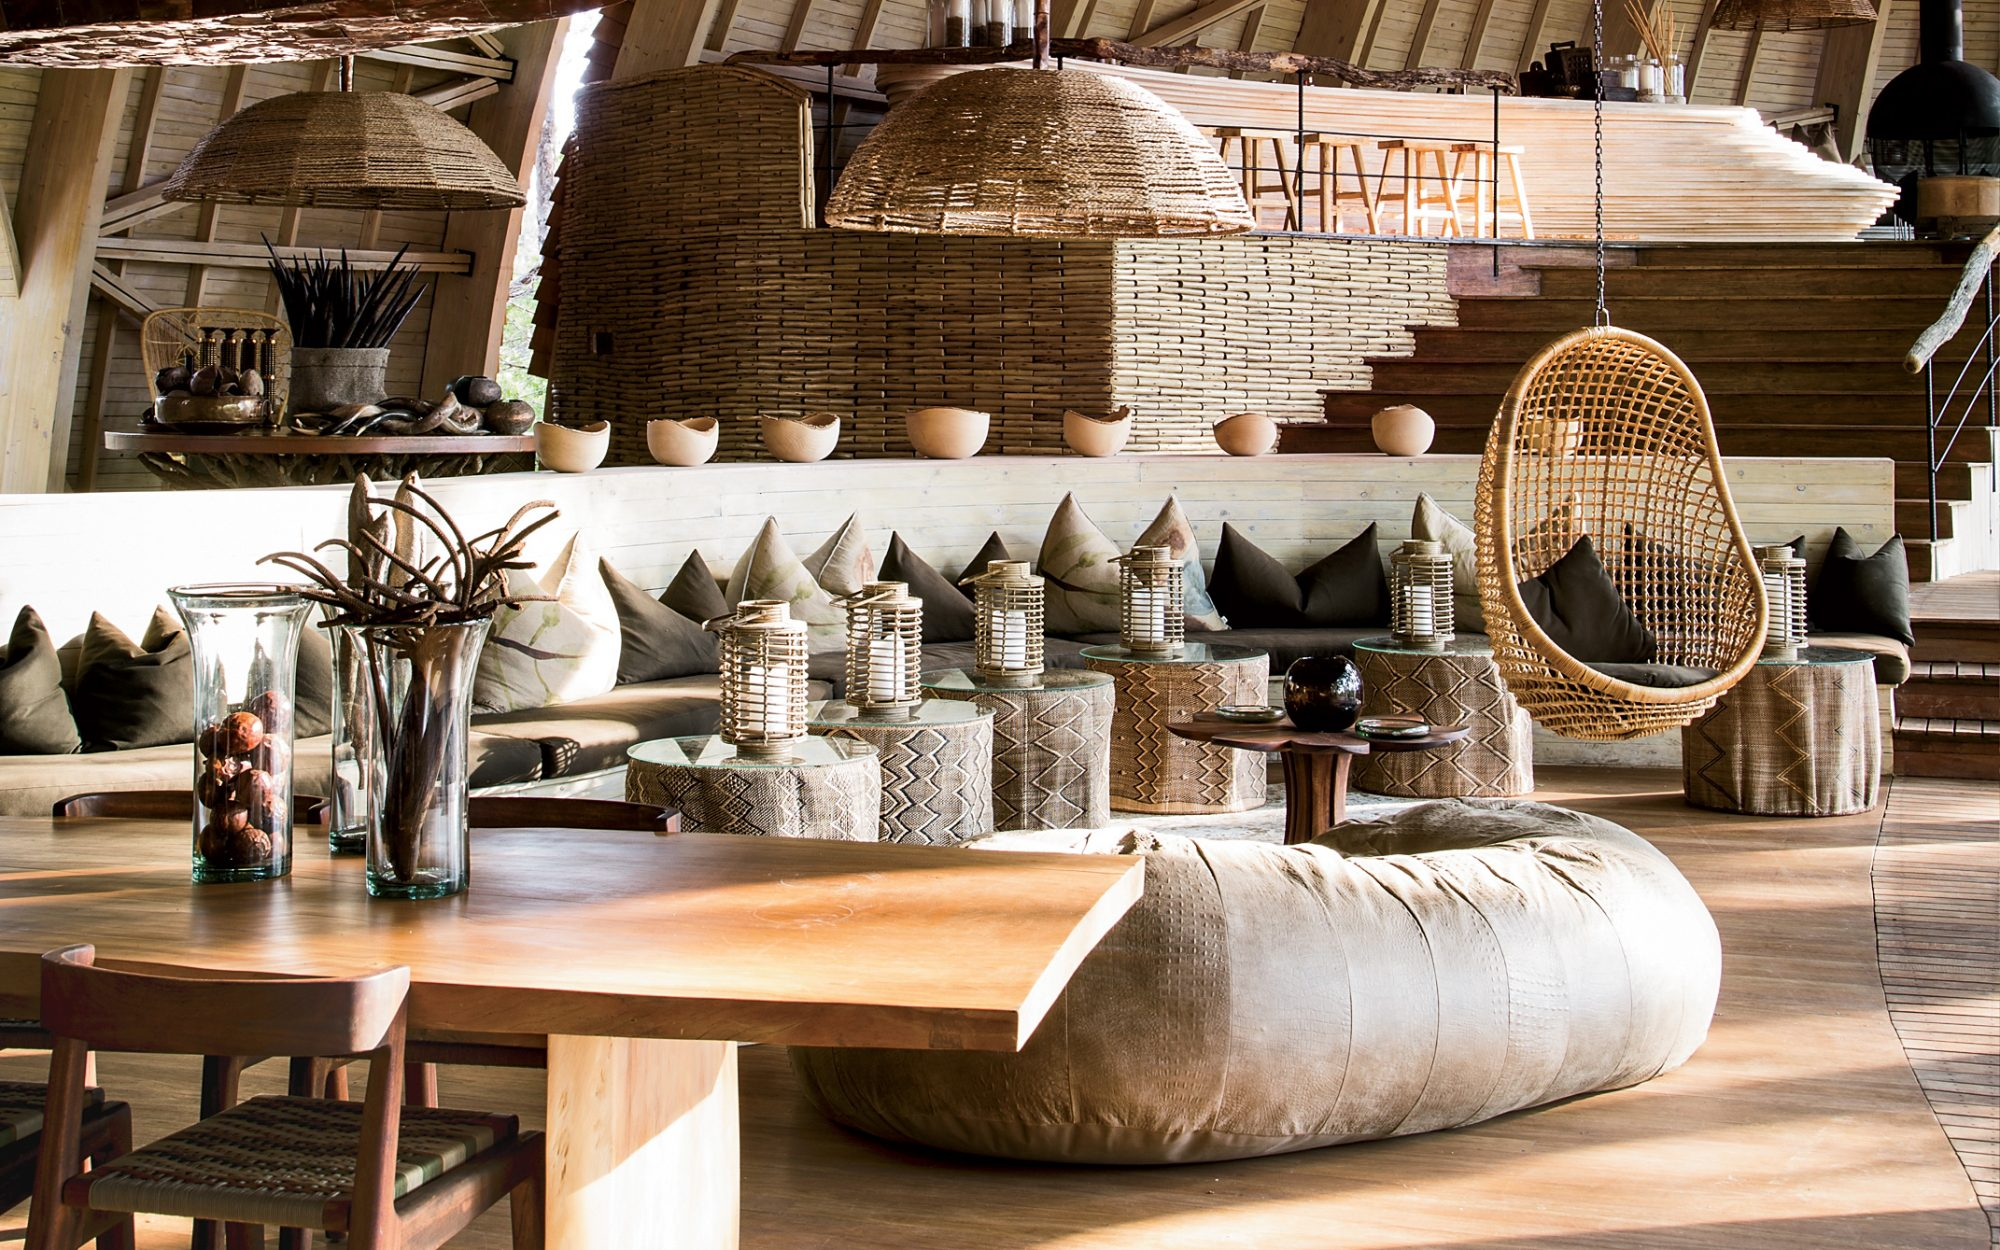 It List: The Best New Hotels 2015: Safari Shake-Up: Sandibe Okavango Safari Lodge, Okavango Delta, Botswana